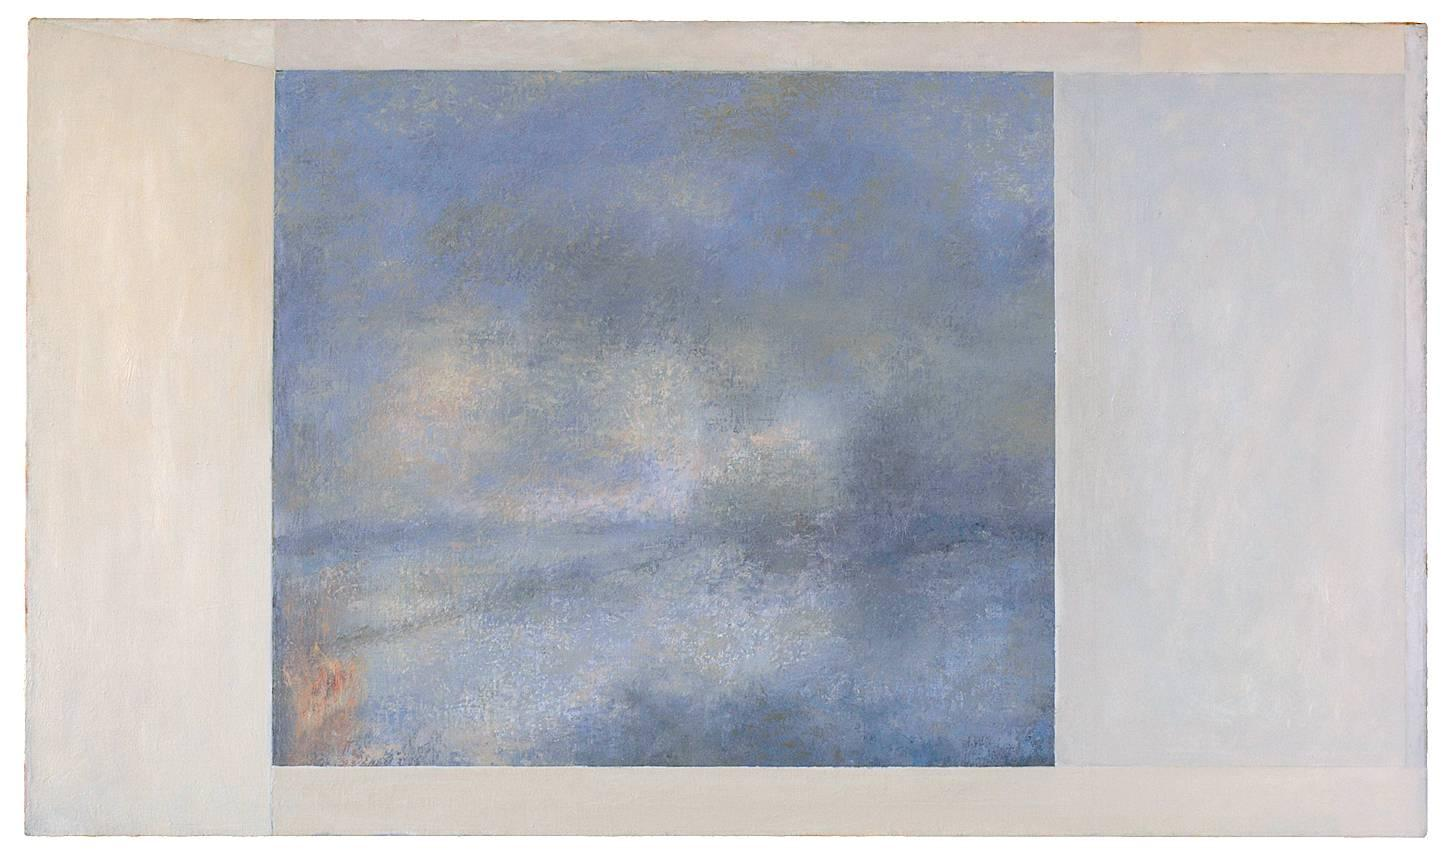 Opening No. 42 (Romanticist Style Abstract Oil Landscape Painting in Pale Blue)